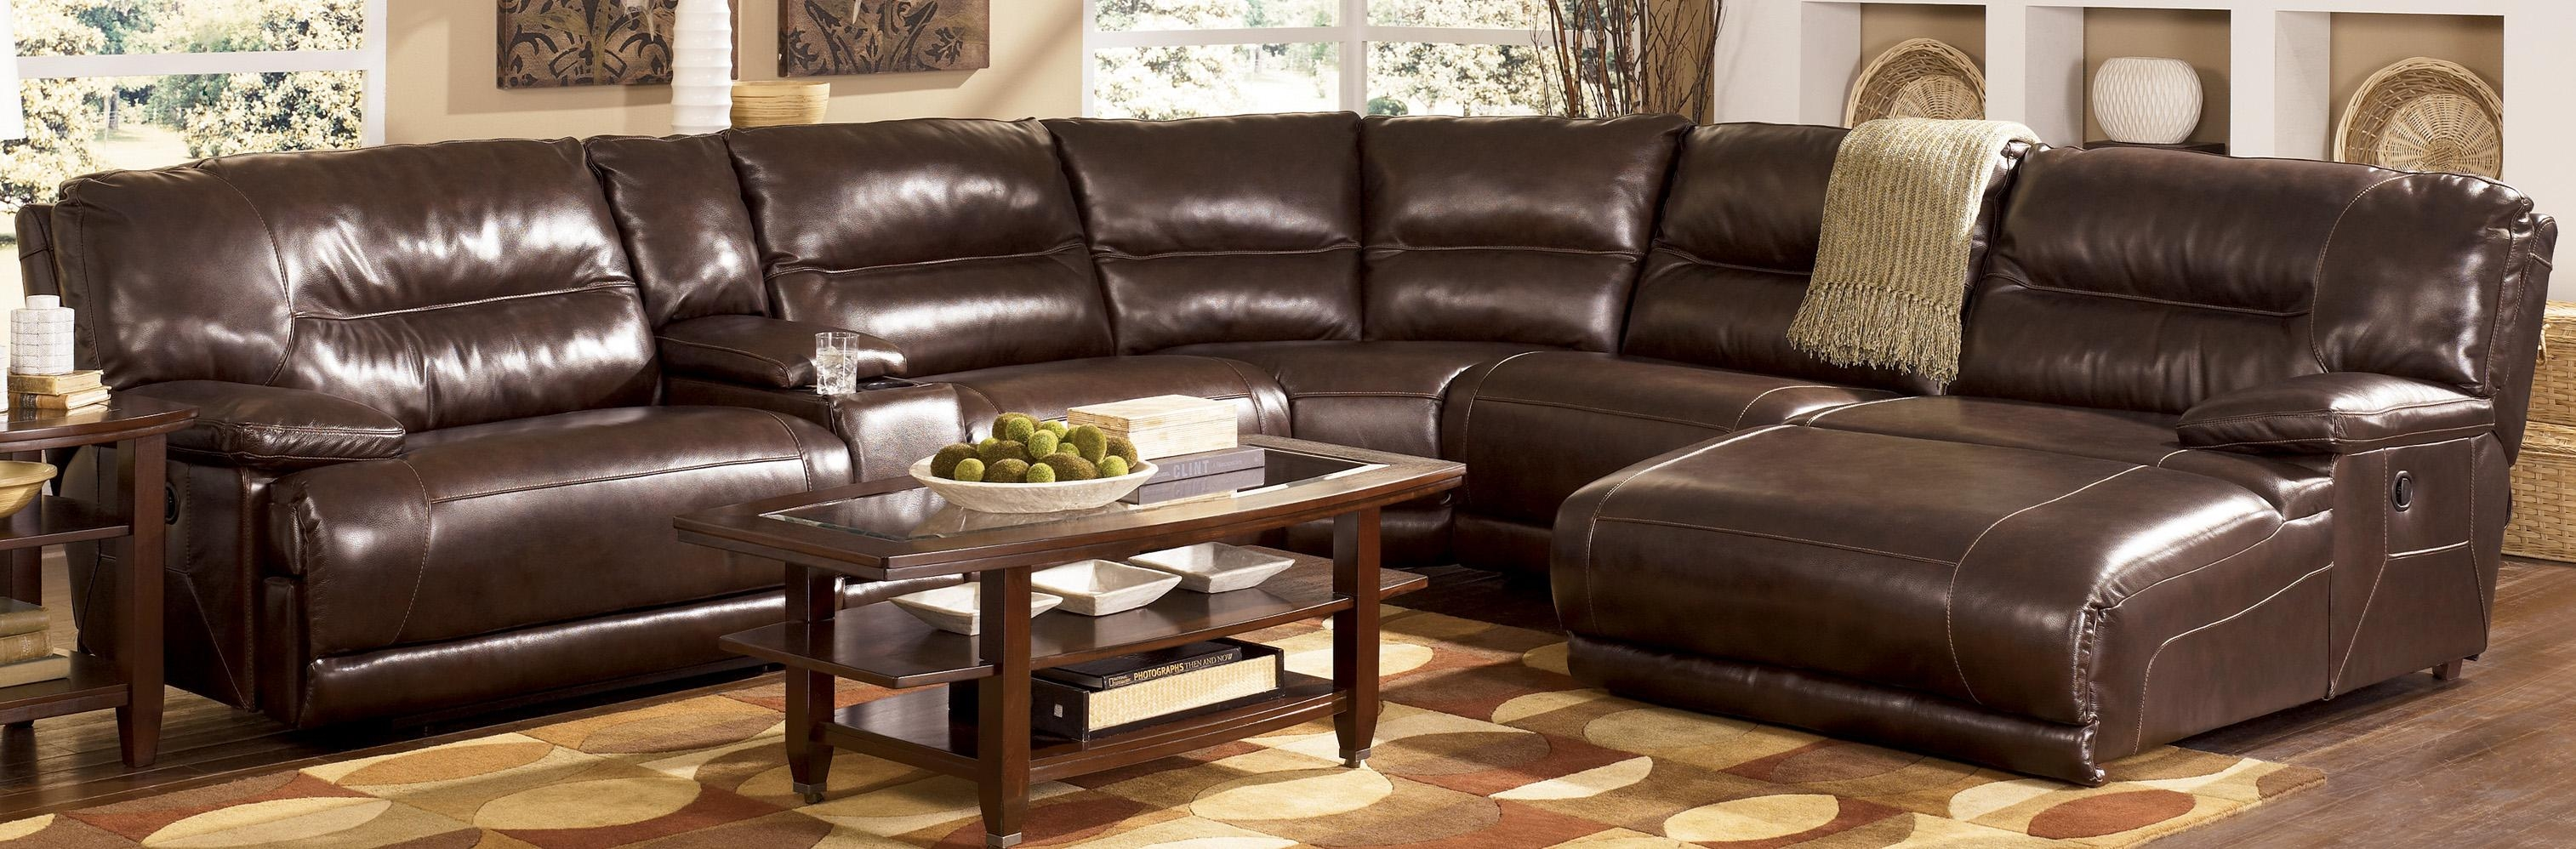 Sofas Center : Thomasville Sofas Fremont Sectional Sofa Leather Throughout  Thomasville Leather Sectionals (Image 16